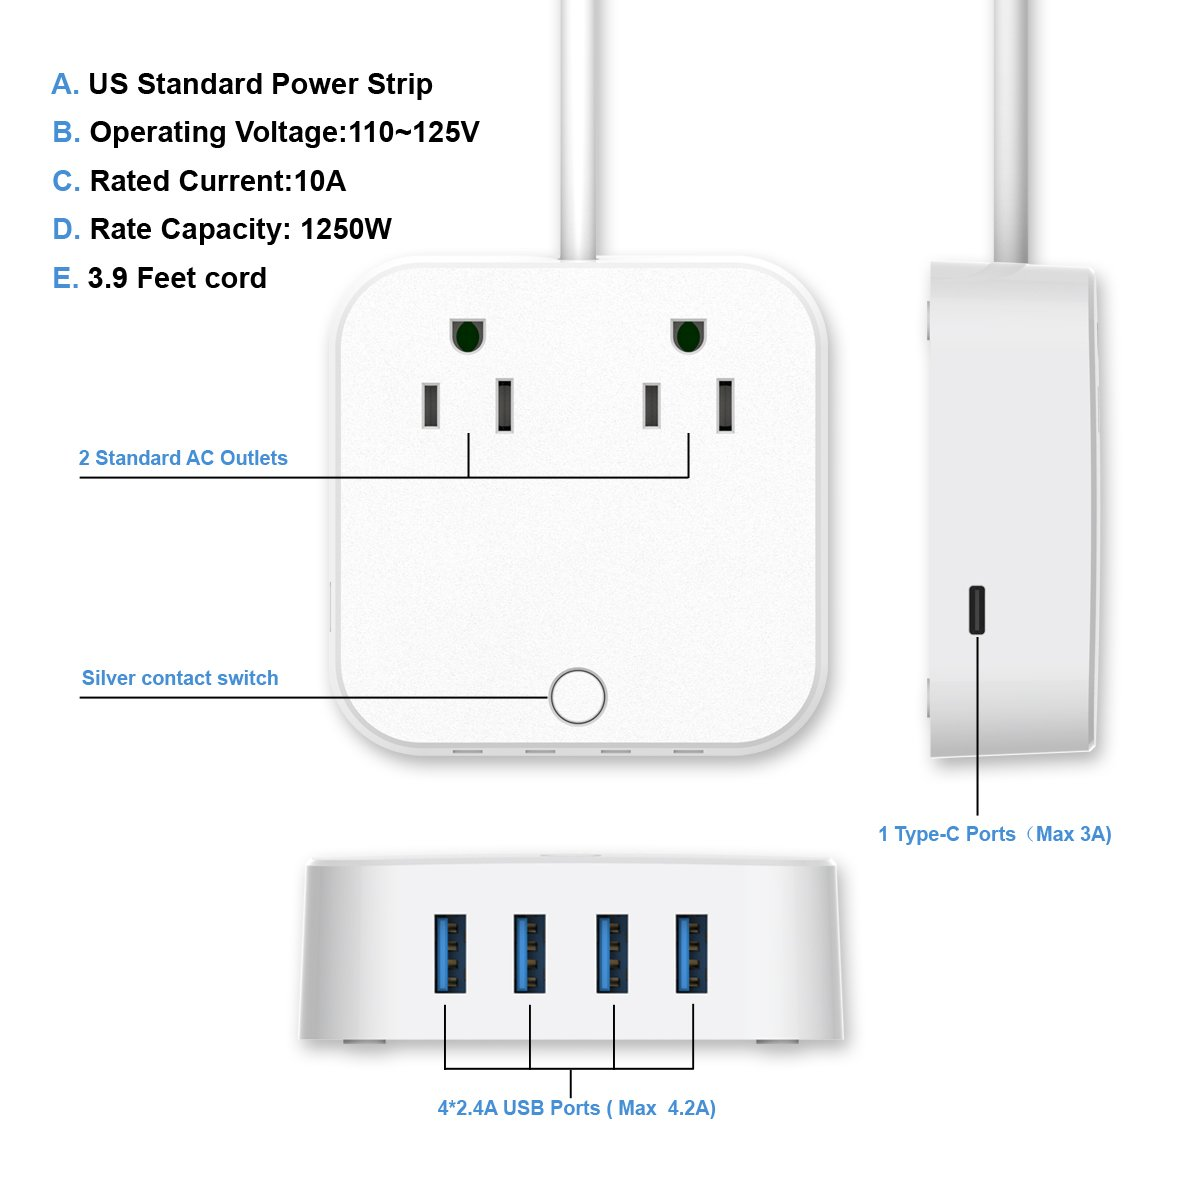 ❤ USB Extension Cord - Surge Protector Power Strip, Type-C Charging Port (5V/3A) & 4 USB Ports (5V/2.4A), Portable Travel Charger Station for iPhone iPad Samsung & Tablets, USB C Not for Laptops by HITRENDS (Image #2)